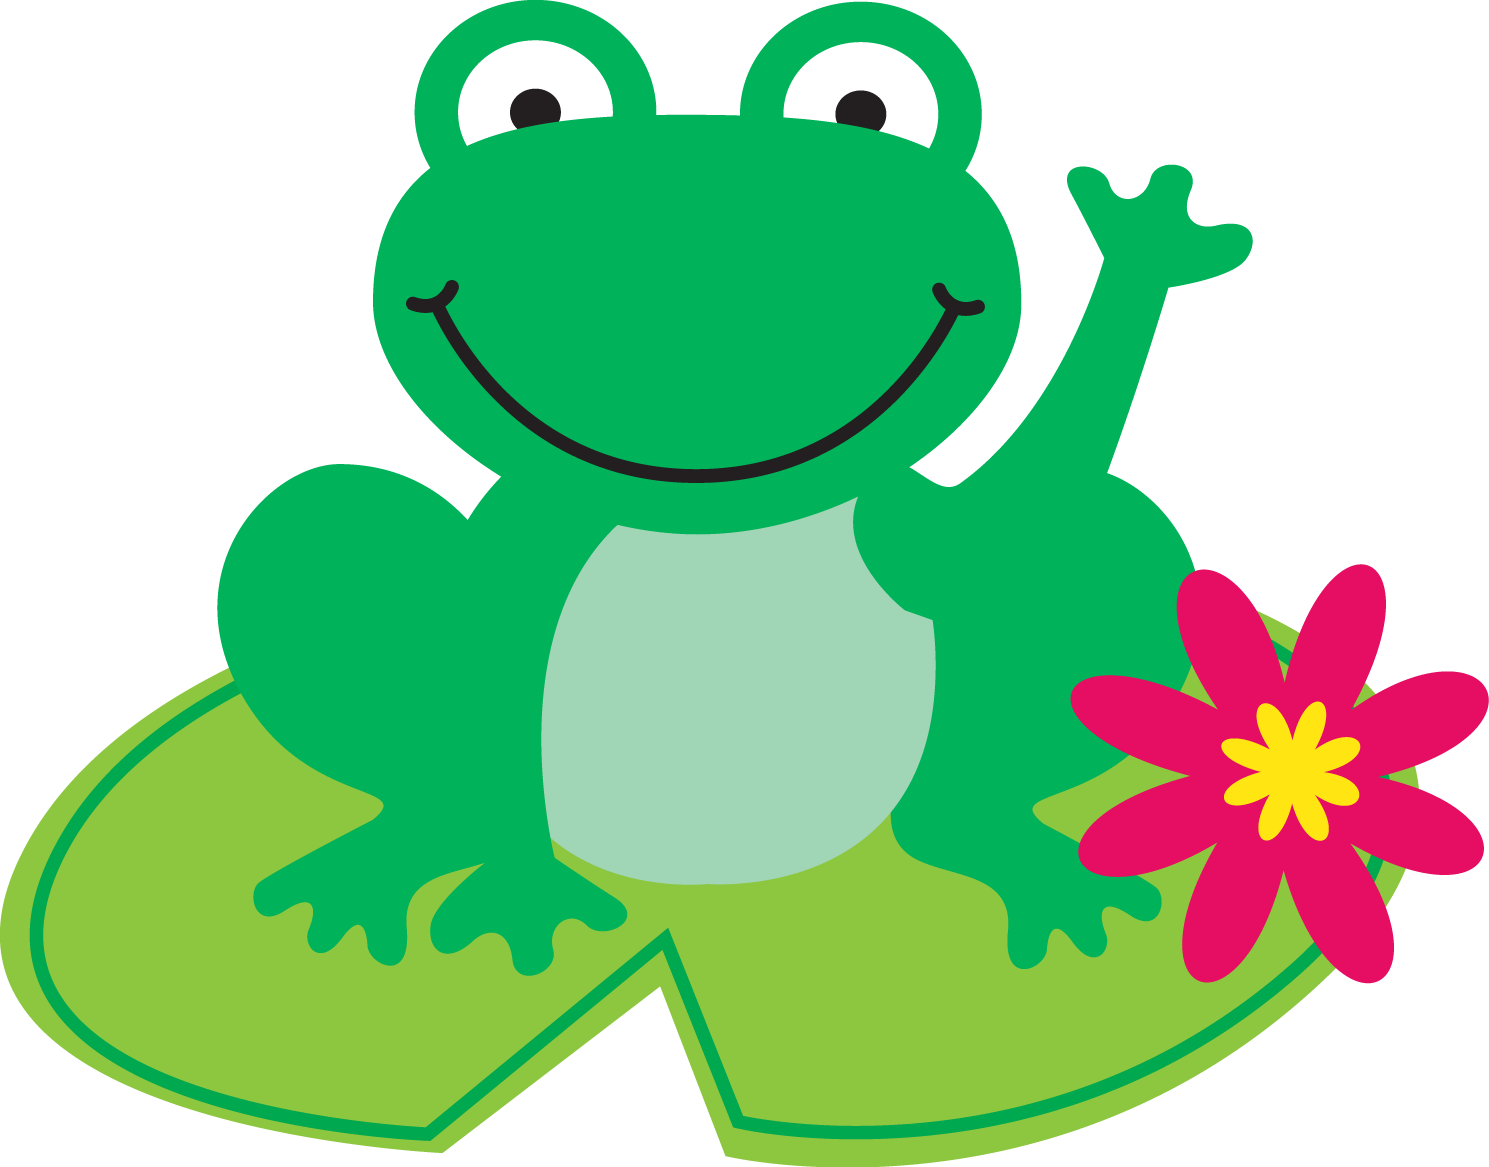 Frog with heart clipart image freeuse stock Photo by @danimfalcao - Minus | Imprimibles | Pinterest | Frogs ... image freeuse stock